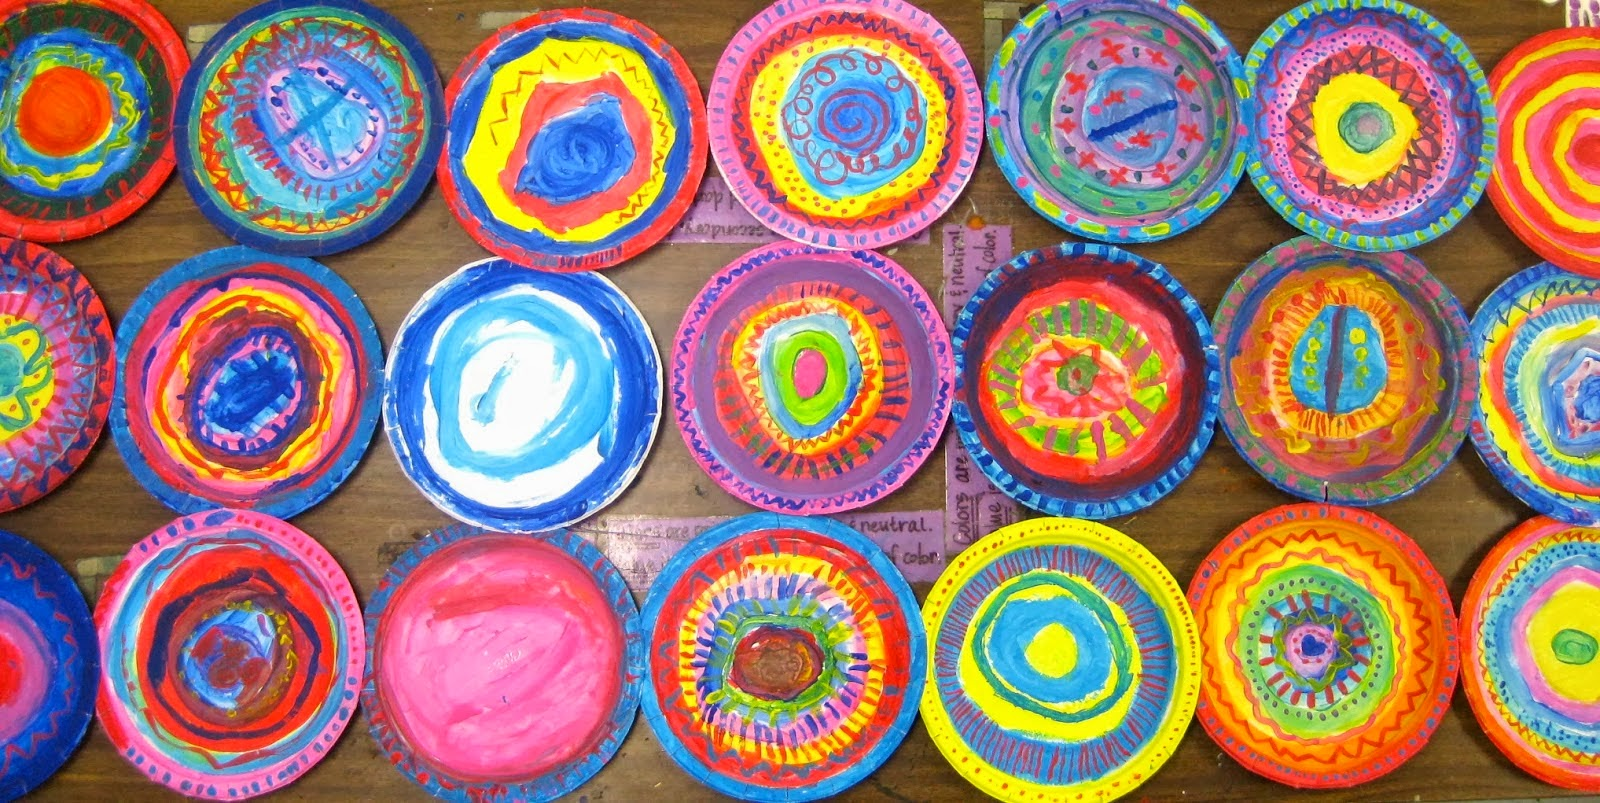 & Cassie Stephens: In the Art Room: Circle Loom Weaving with Second Grade